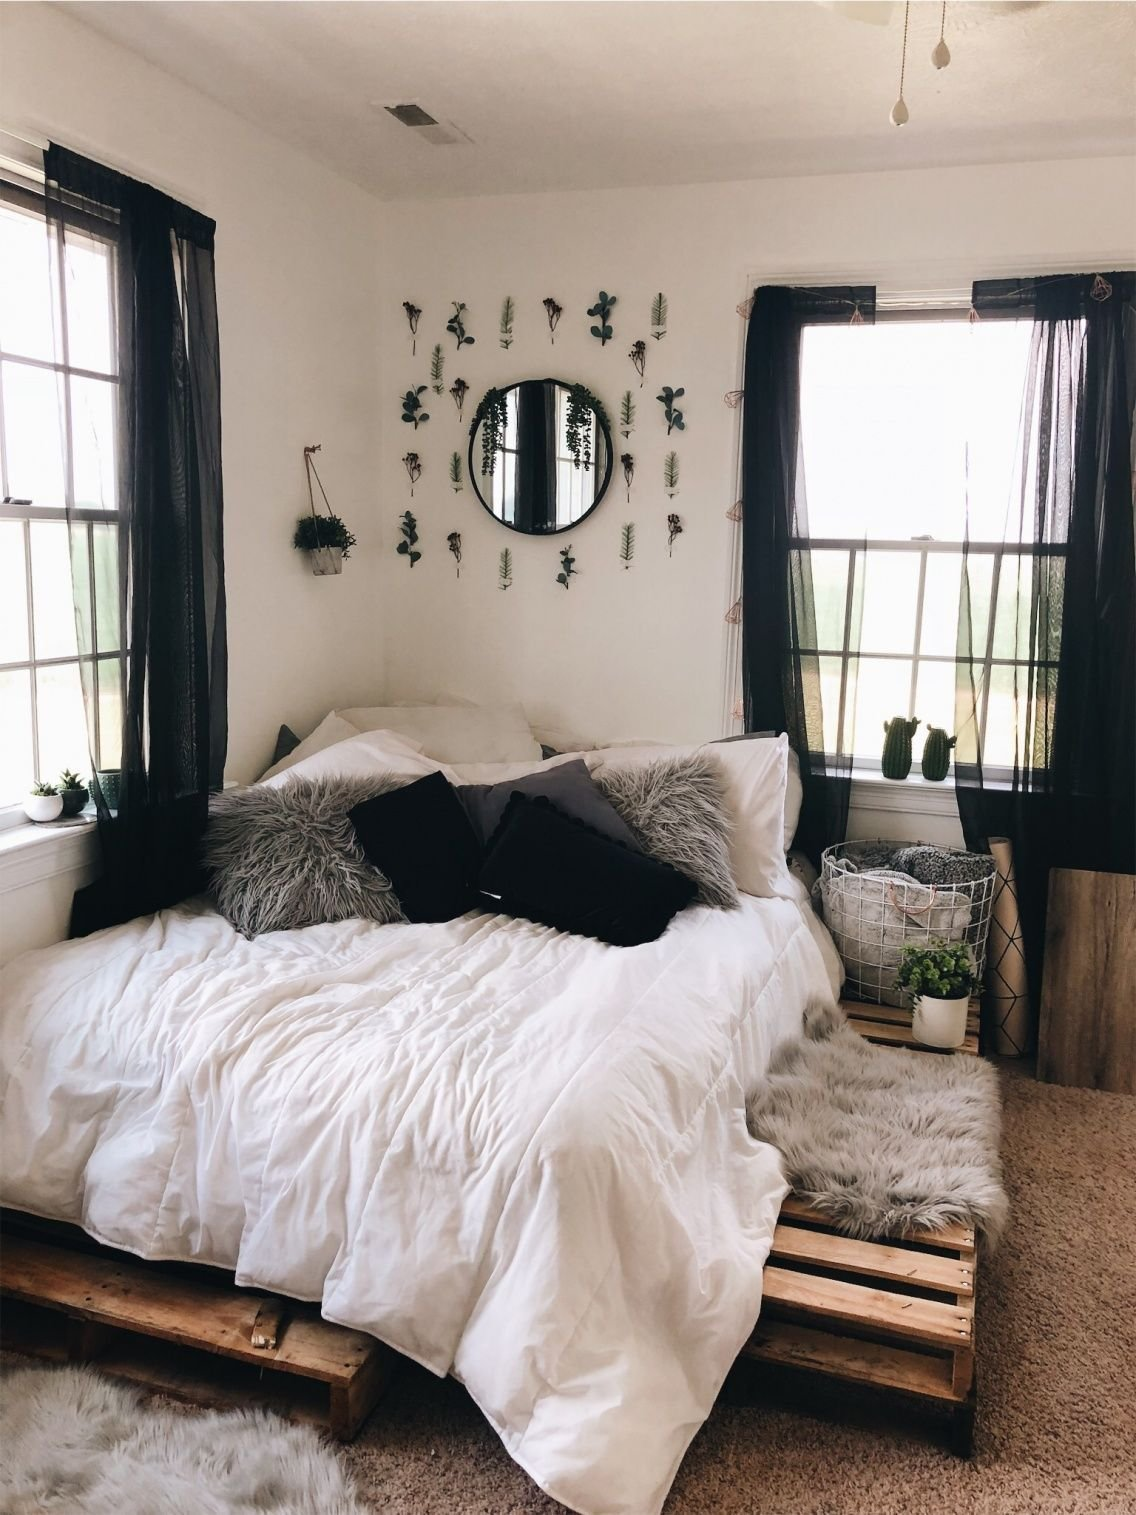 Best P I N T E R E S T ☆ Matilde Alagoa Room Inspo In 2019 With Pictures